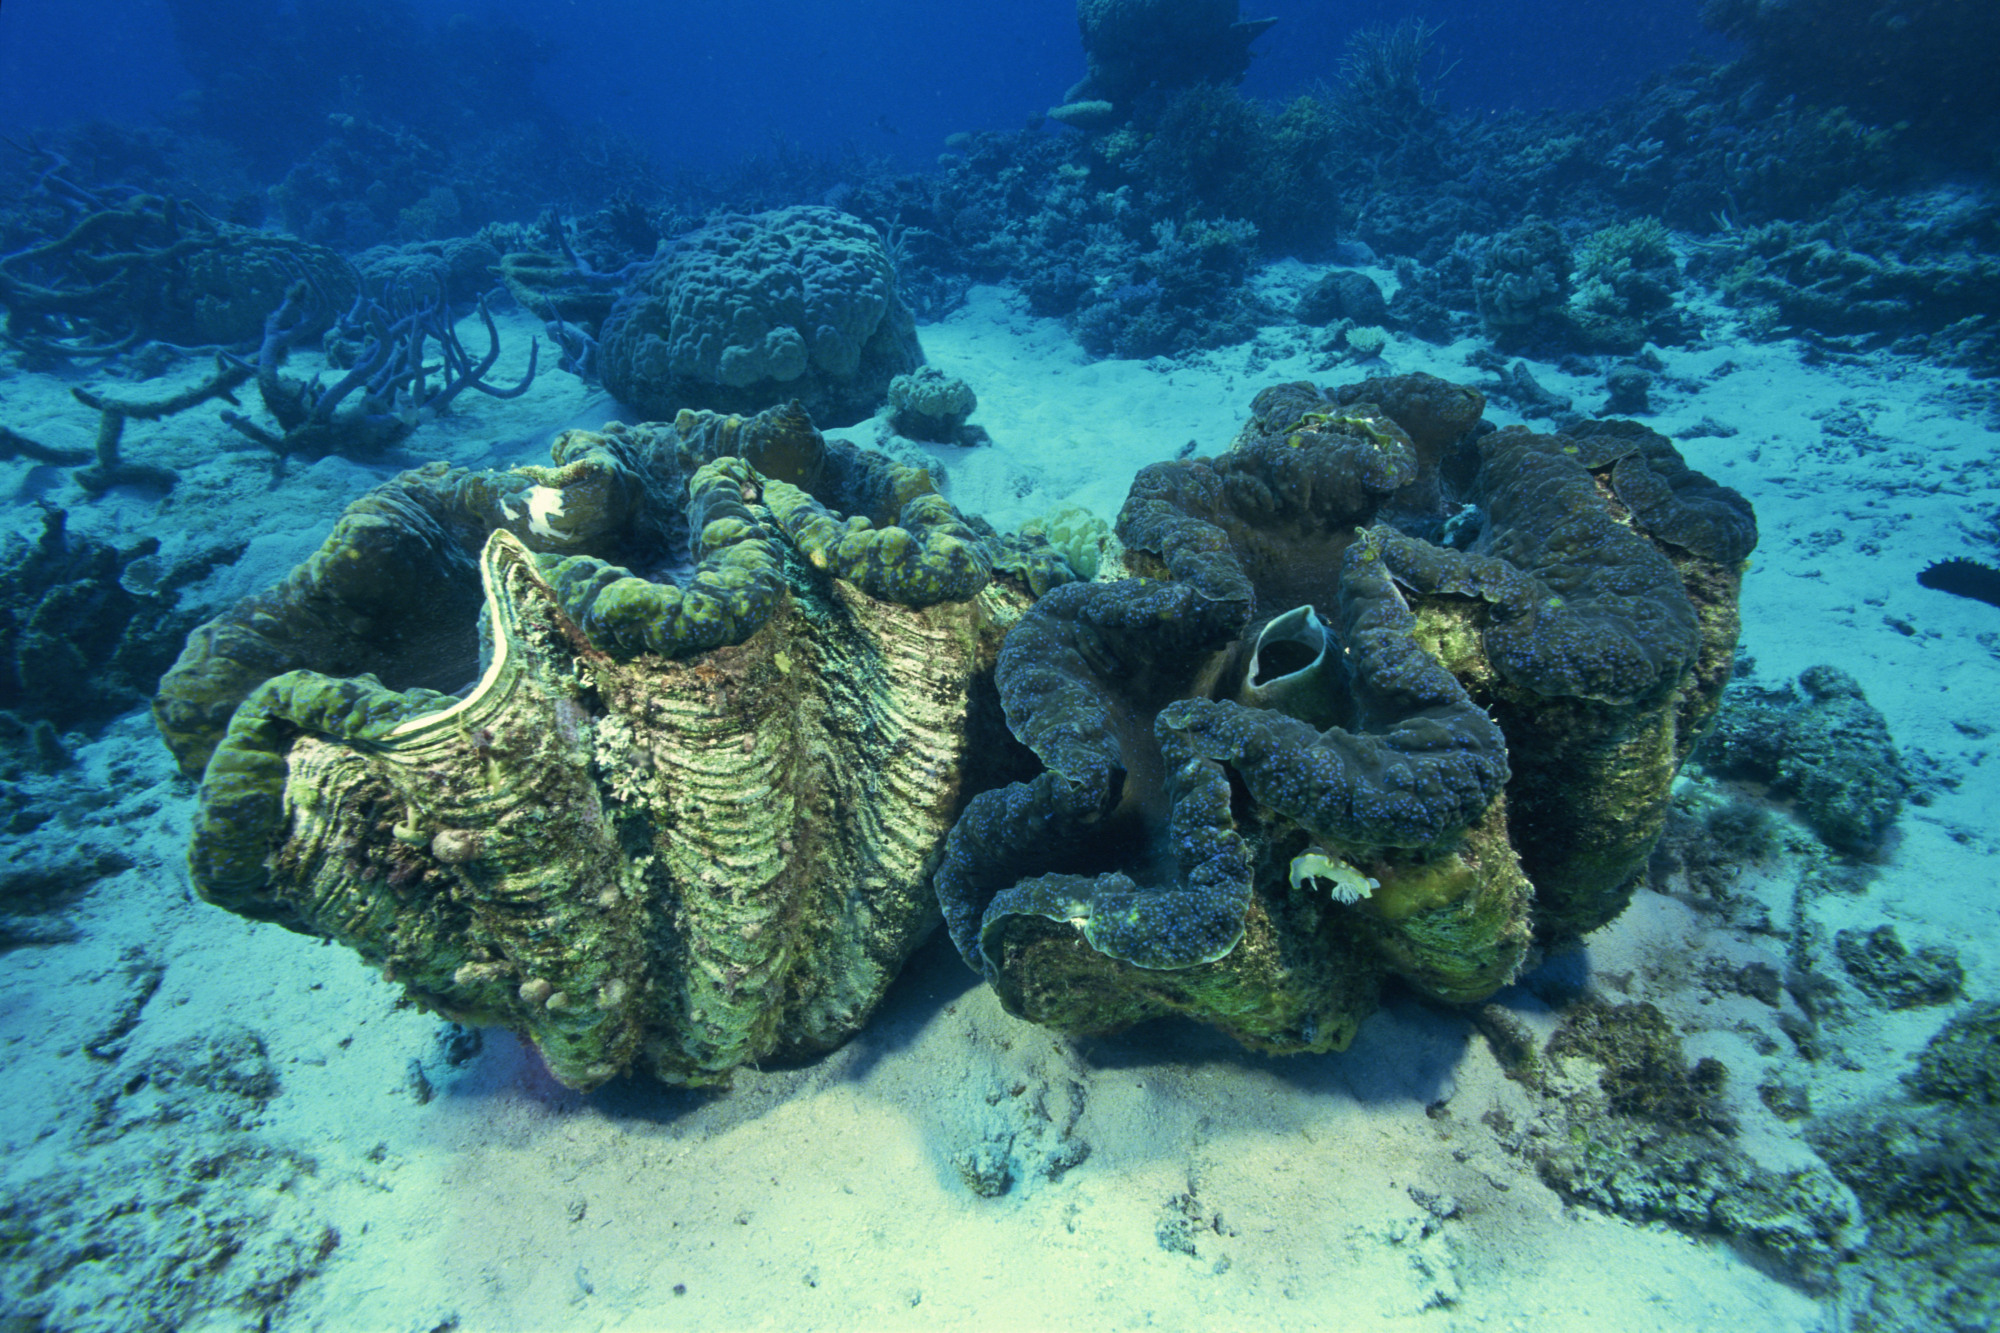 The shells of giant clams can be worth a fortune in China, and has led to fleets of Chinese fishermen taking them illegally from contested waters in the South China Sea. | GETTY IMAGES